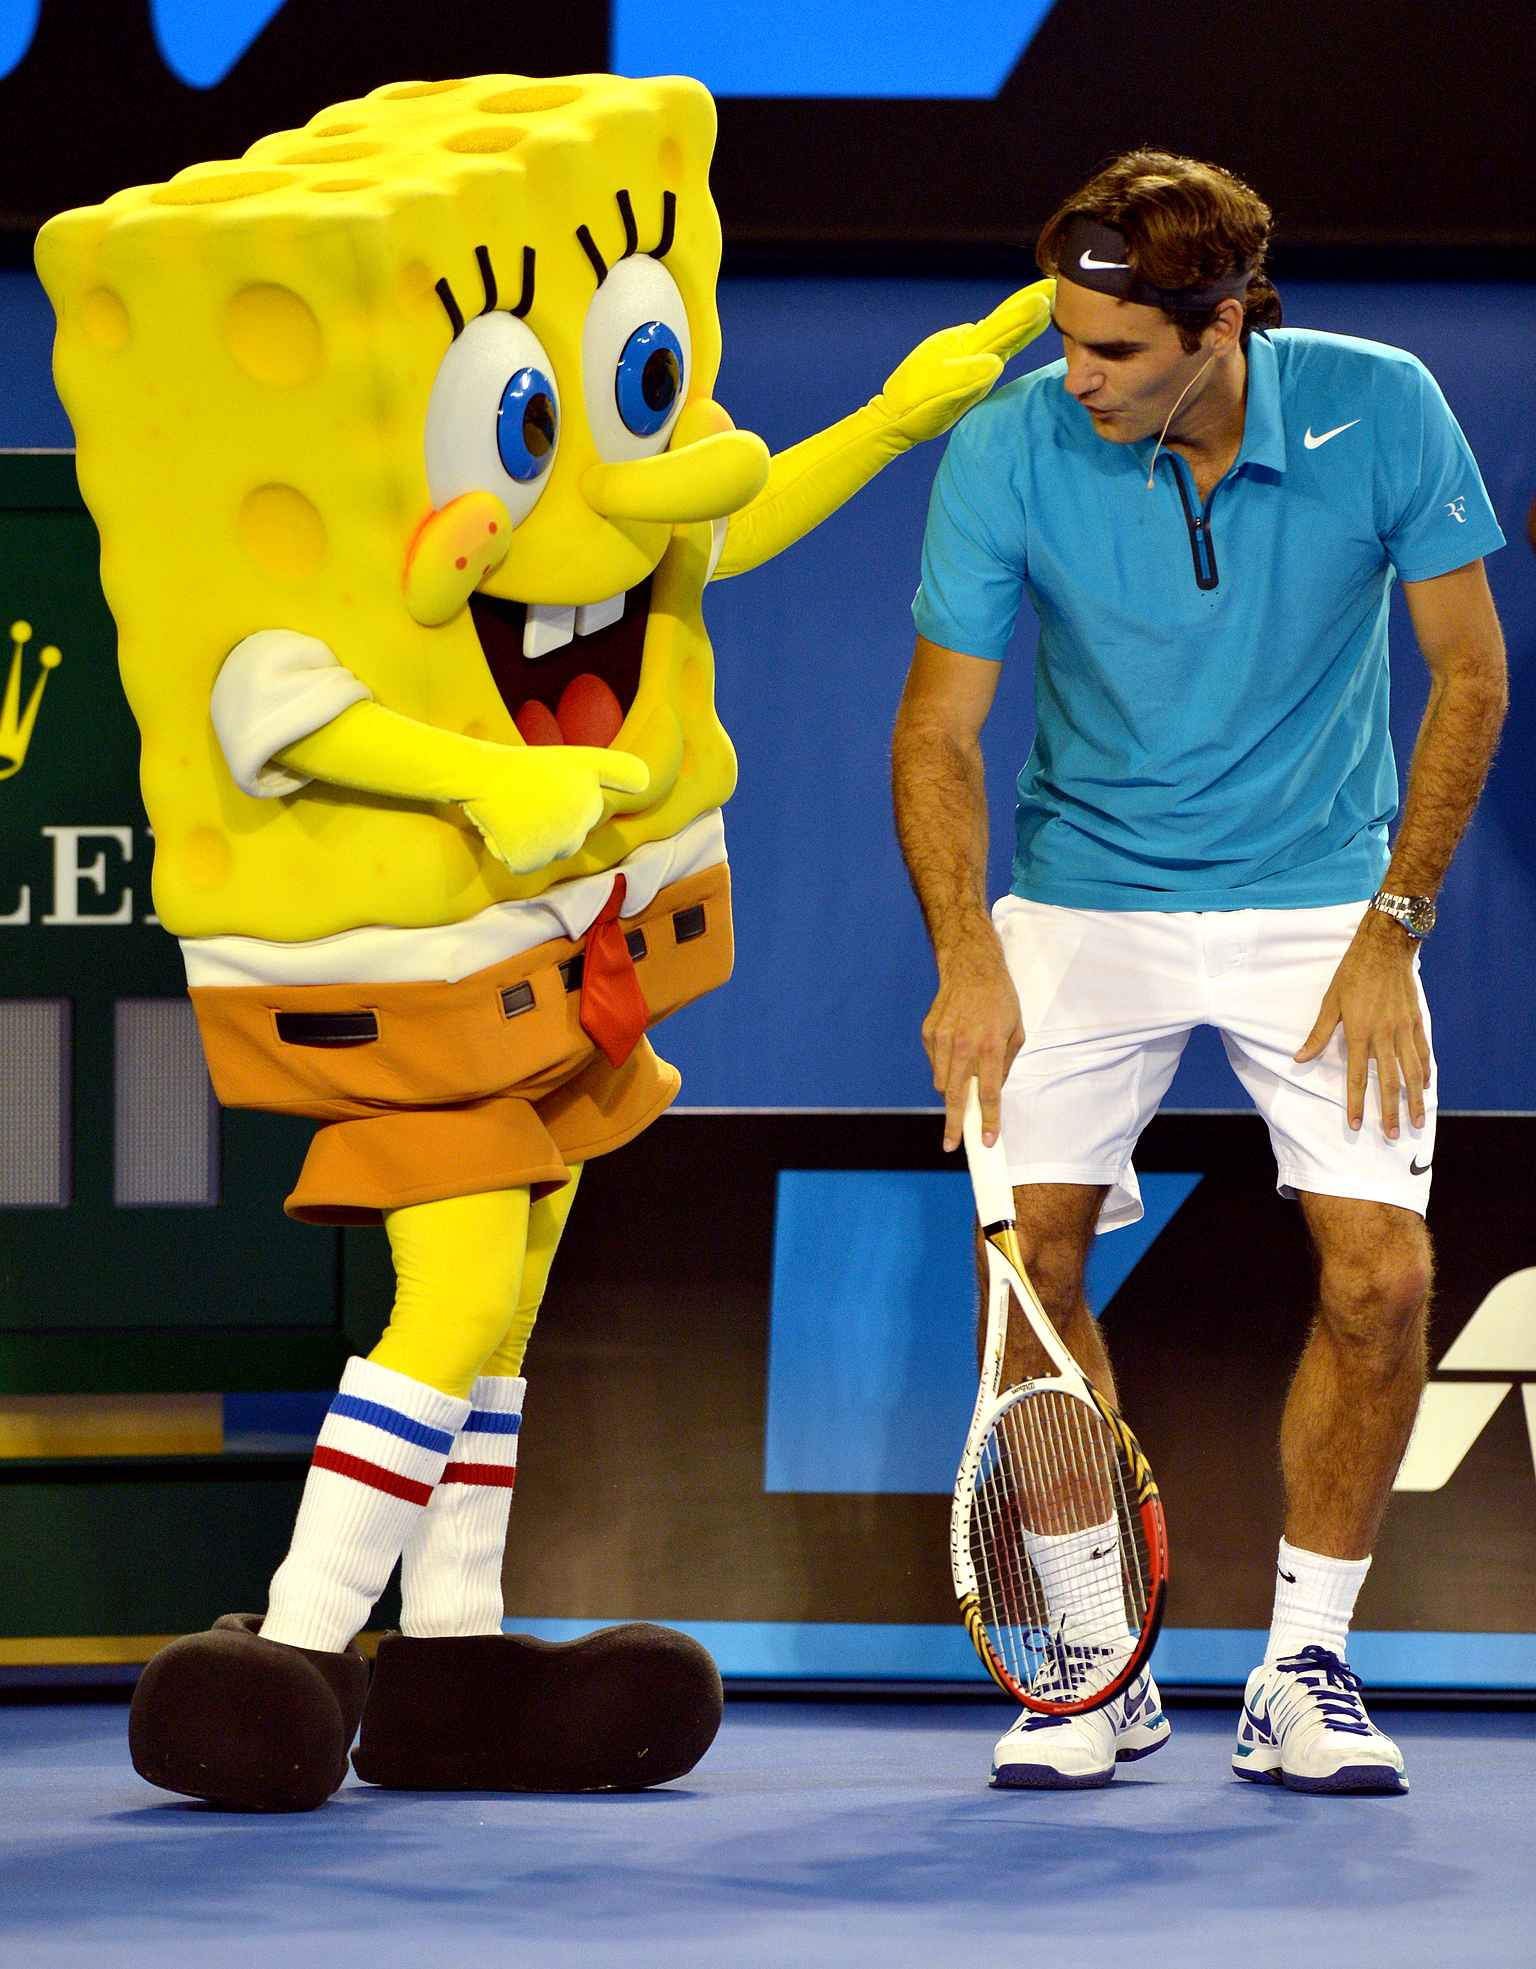 roger-federer-of-switzerland-r-db23-diaporama